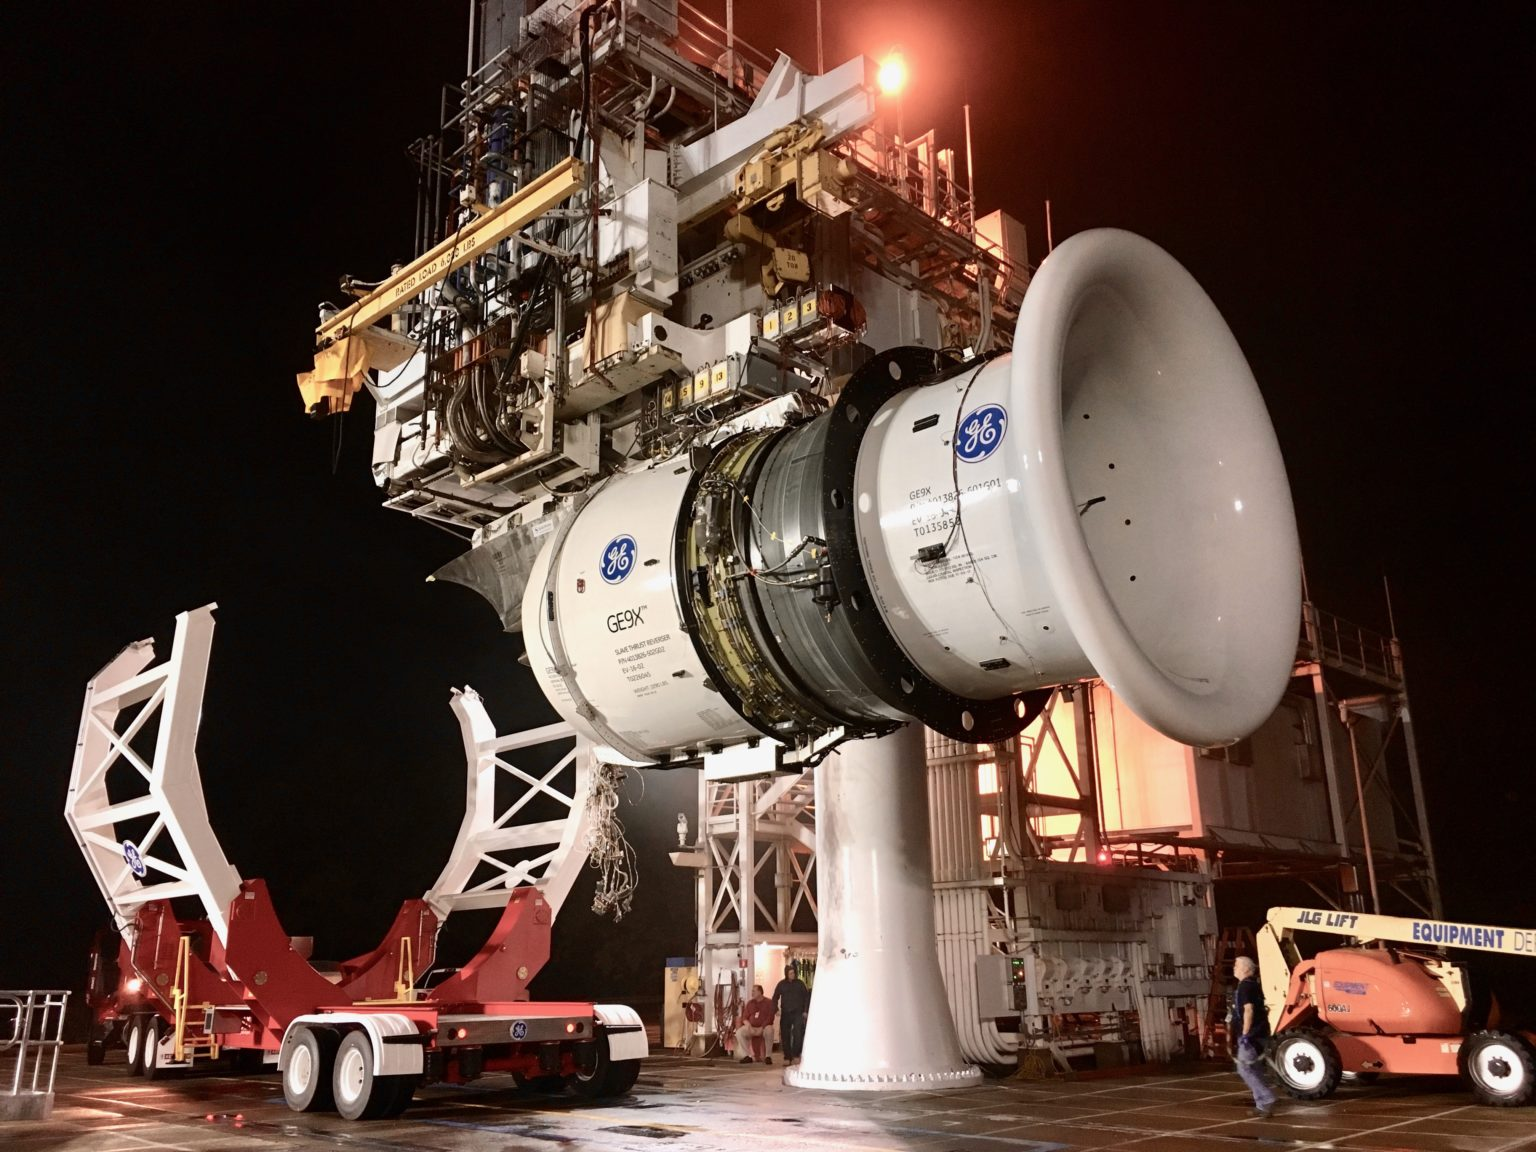 Photo of the GE9X engine with its transporter